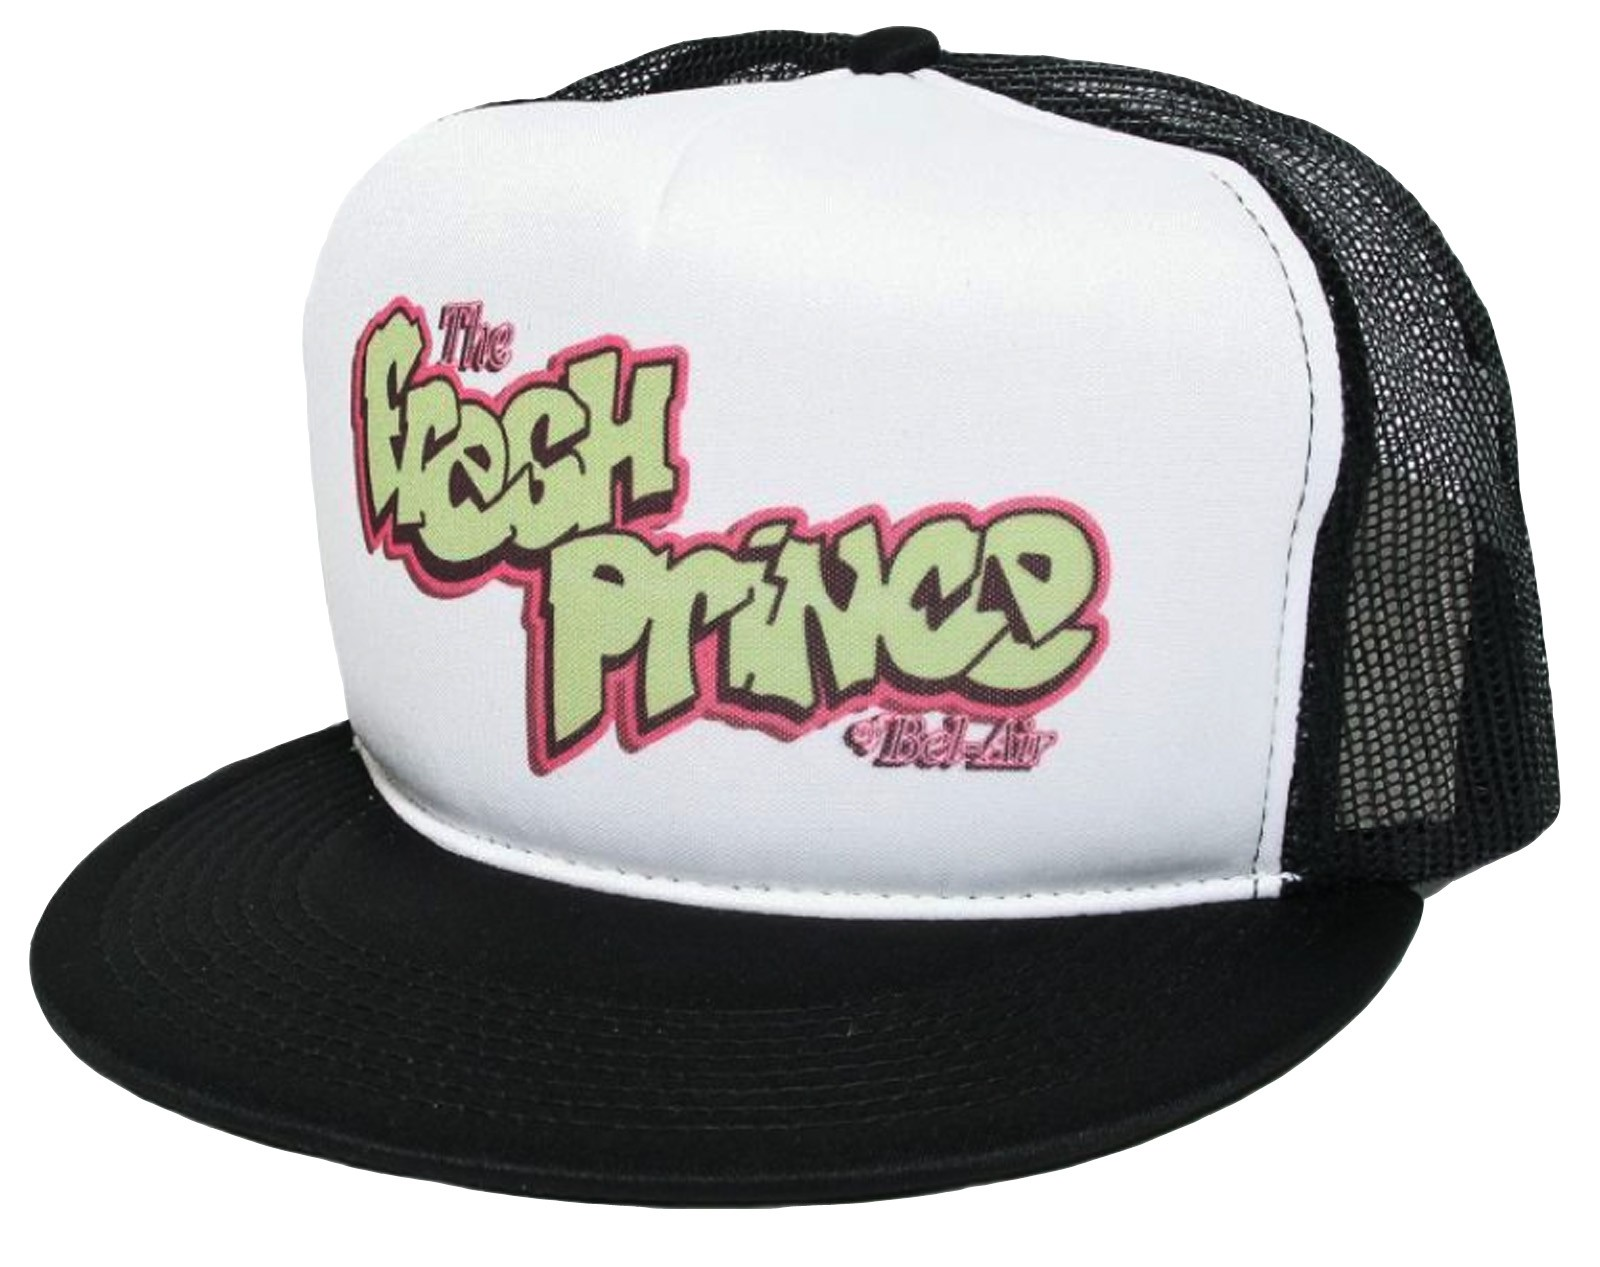 Retro Cap - Fresh Prince Movie Cap